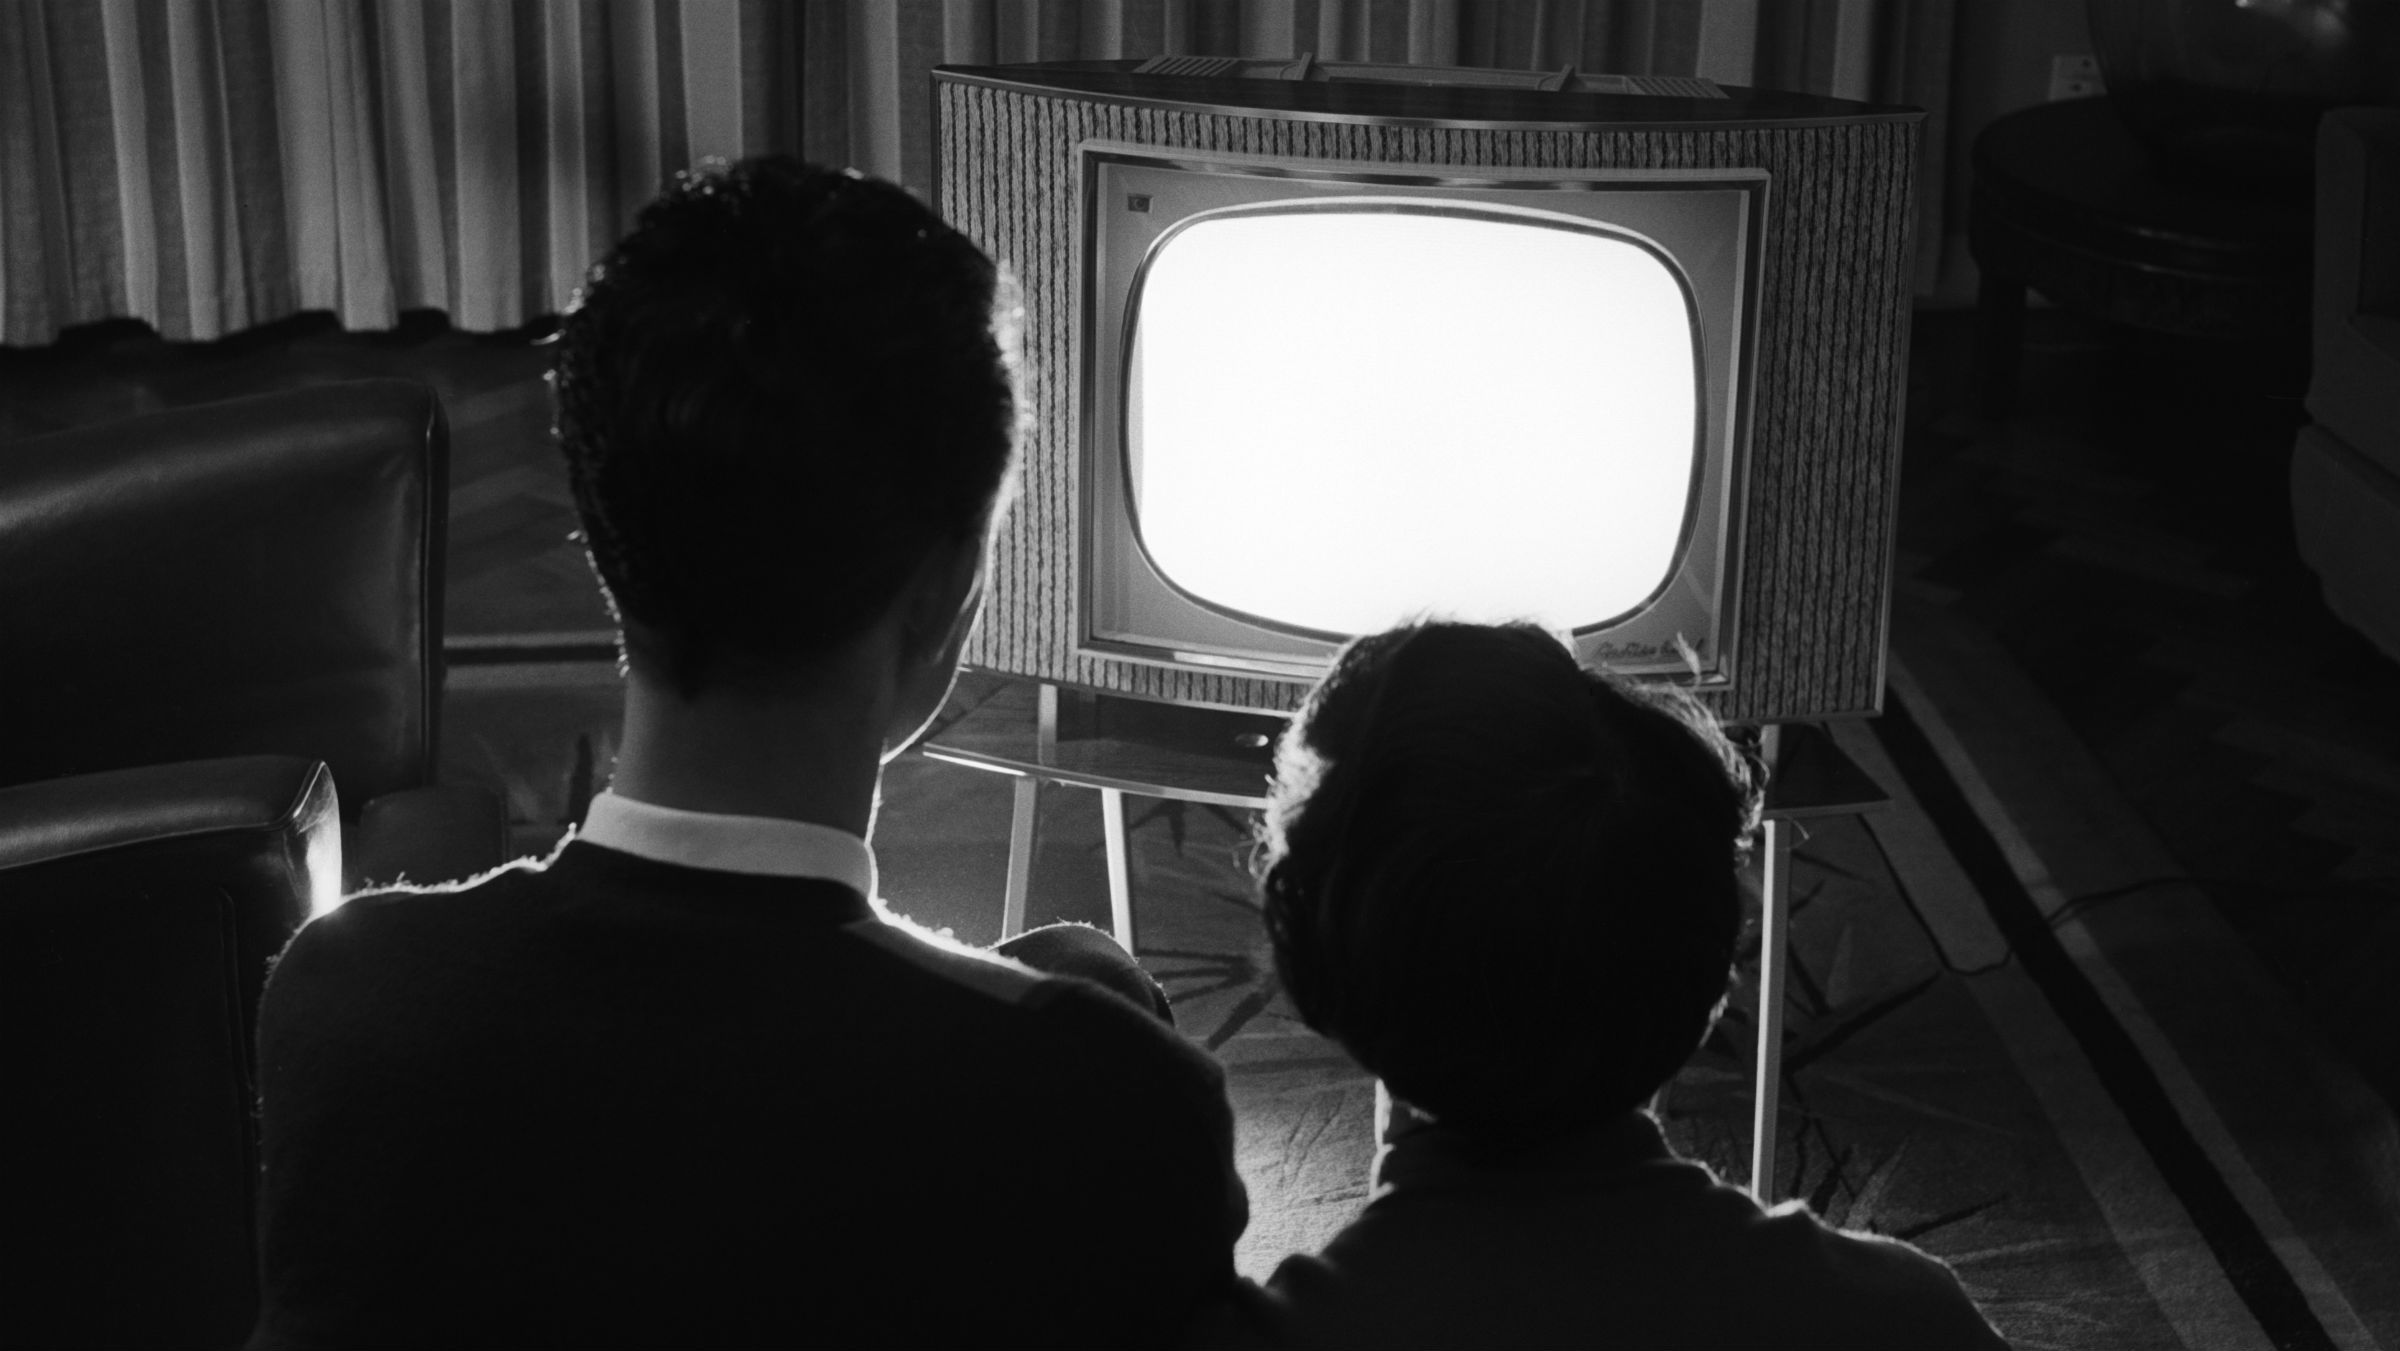 A couple watching TV, Bickley, Kent, 15th September 1960.